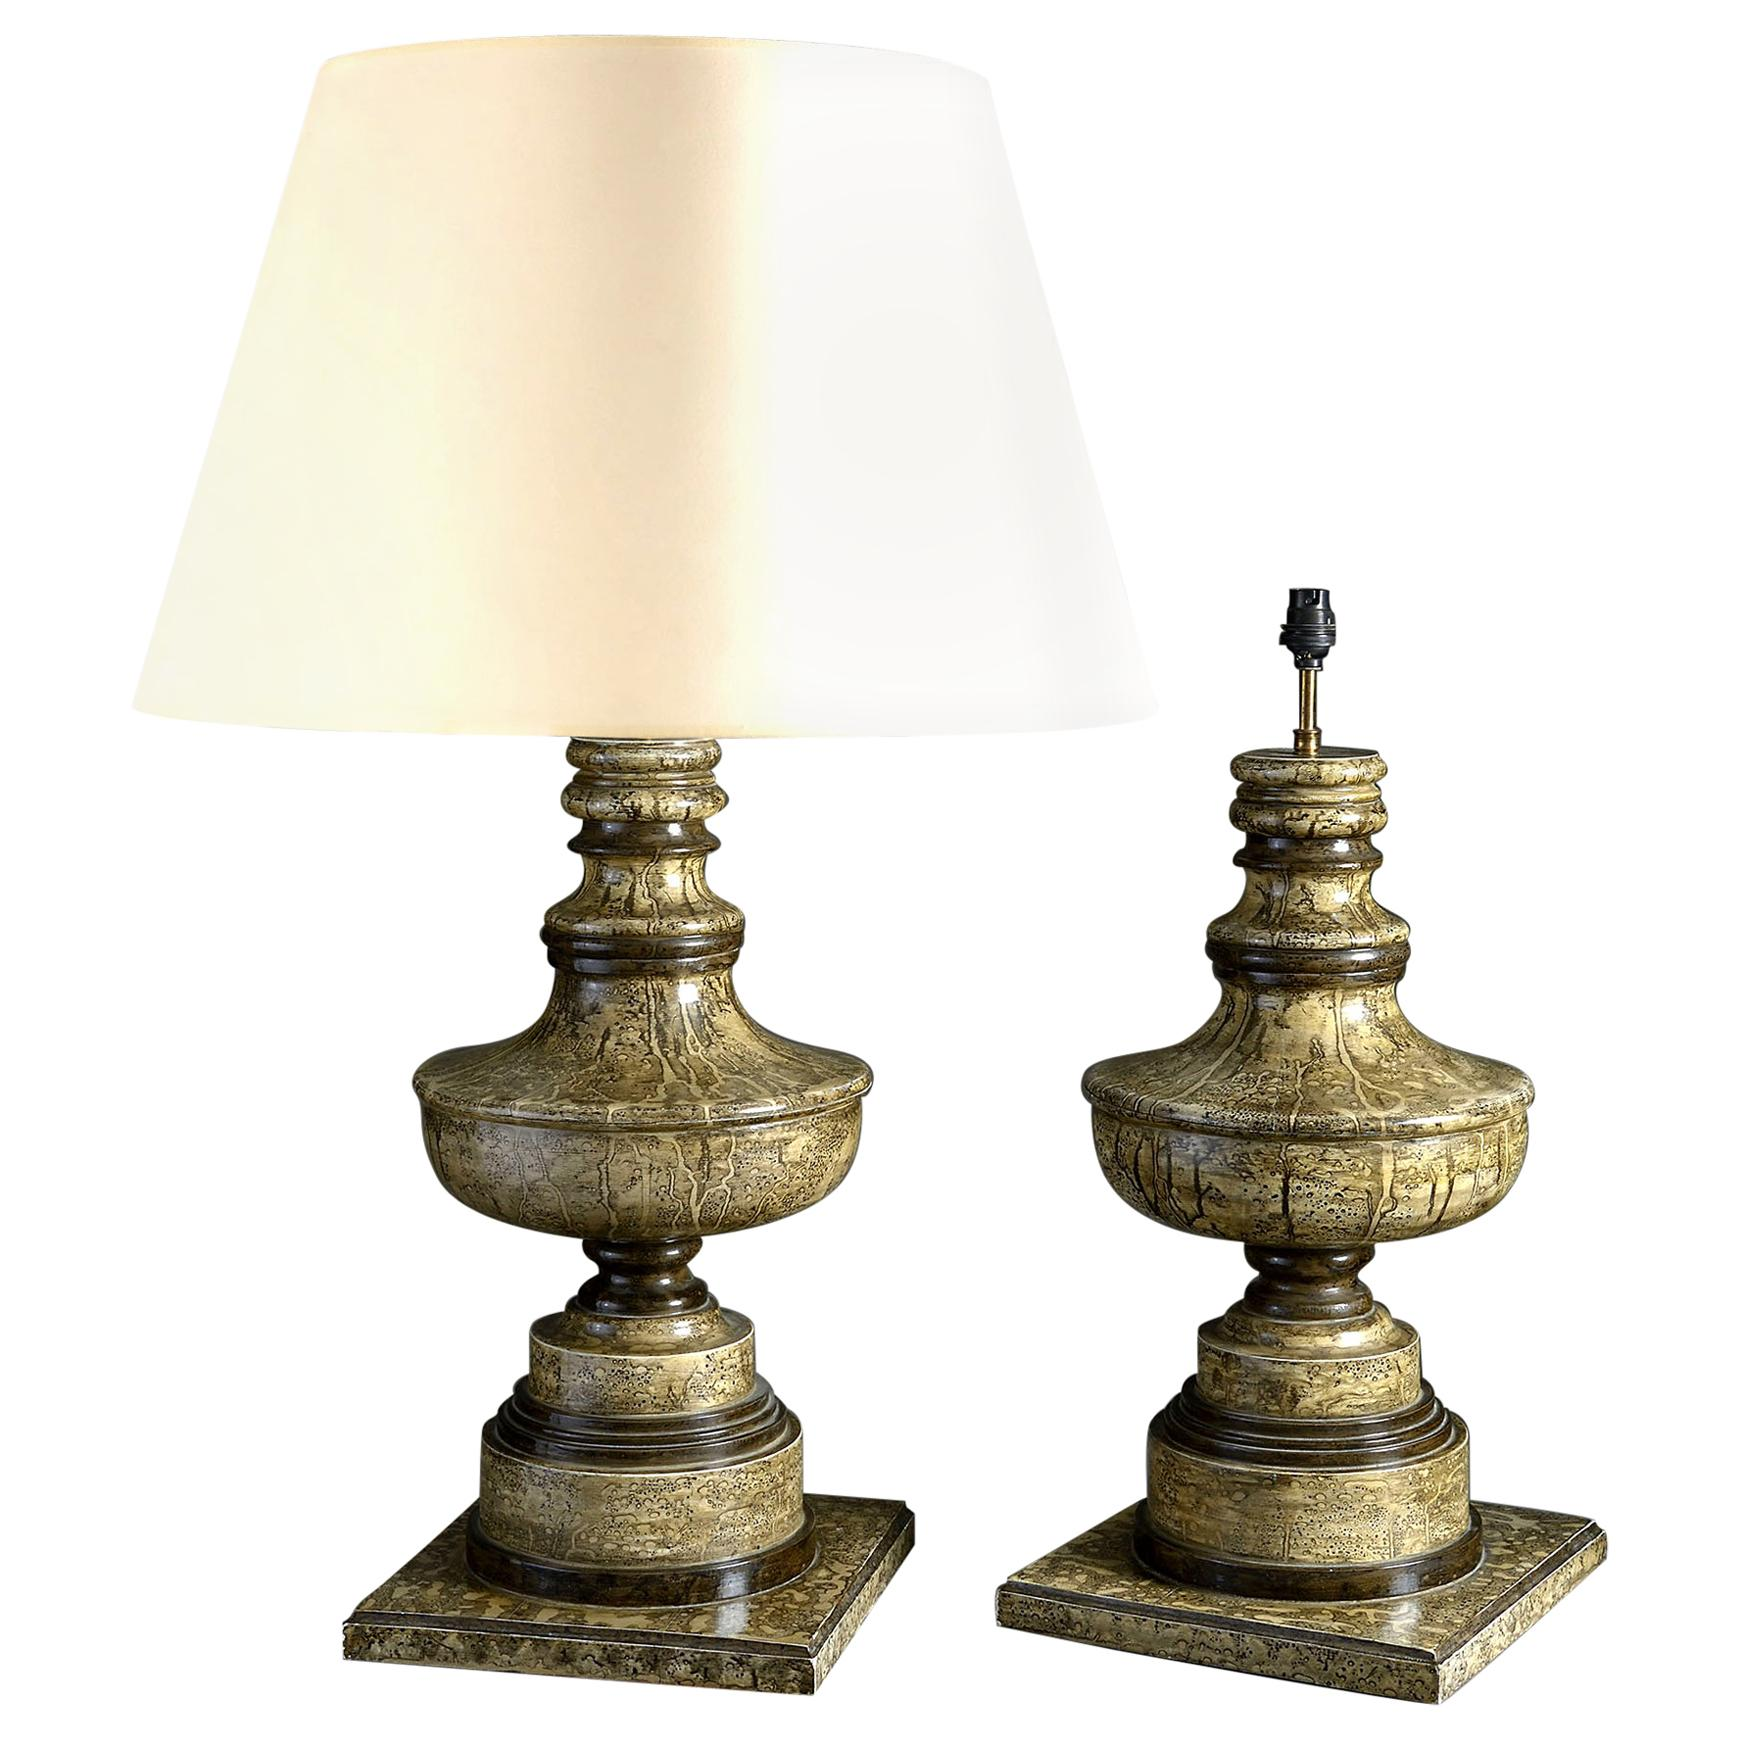 Pair of Faux Marble Painted Table Lamps of Urn Form